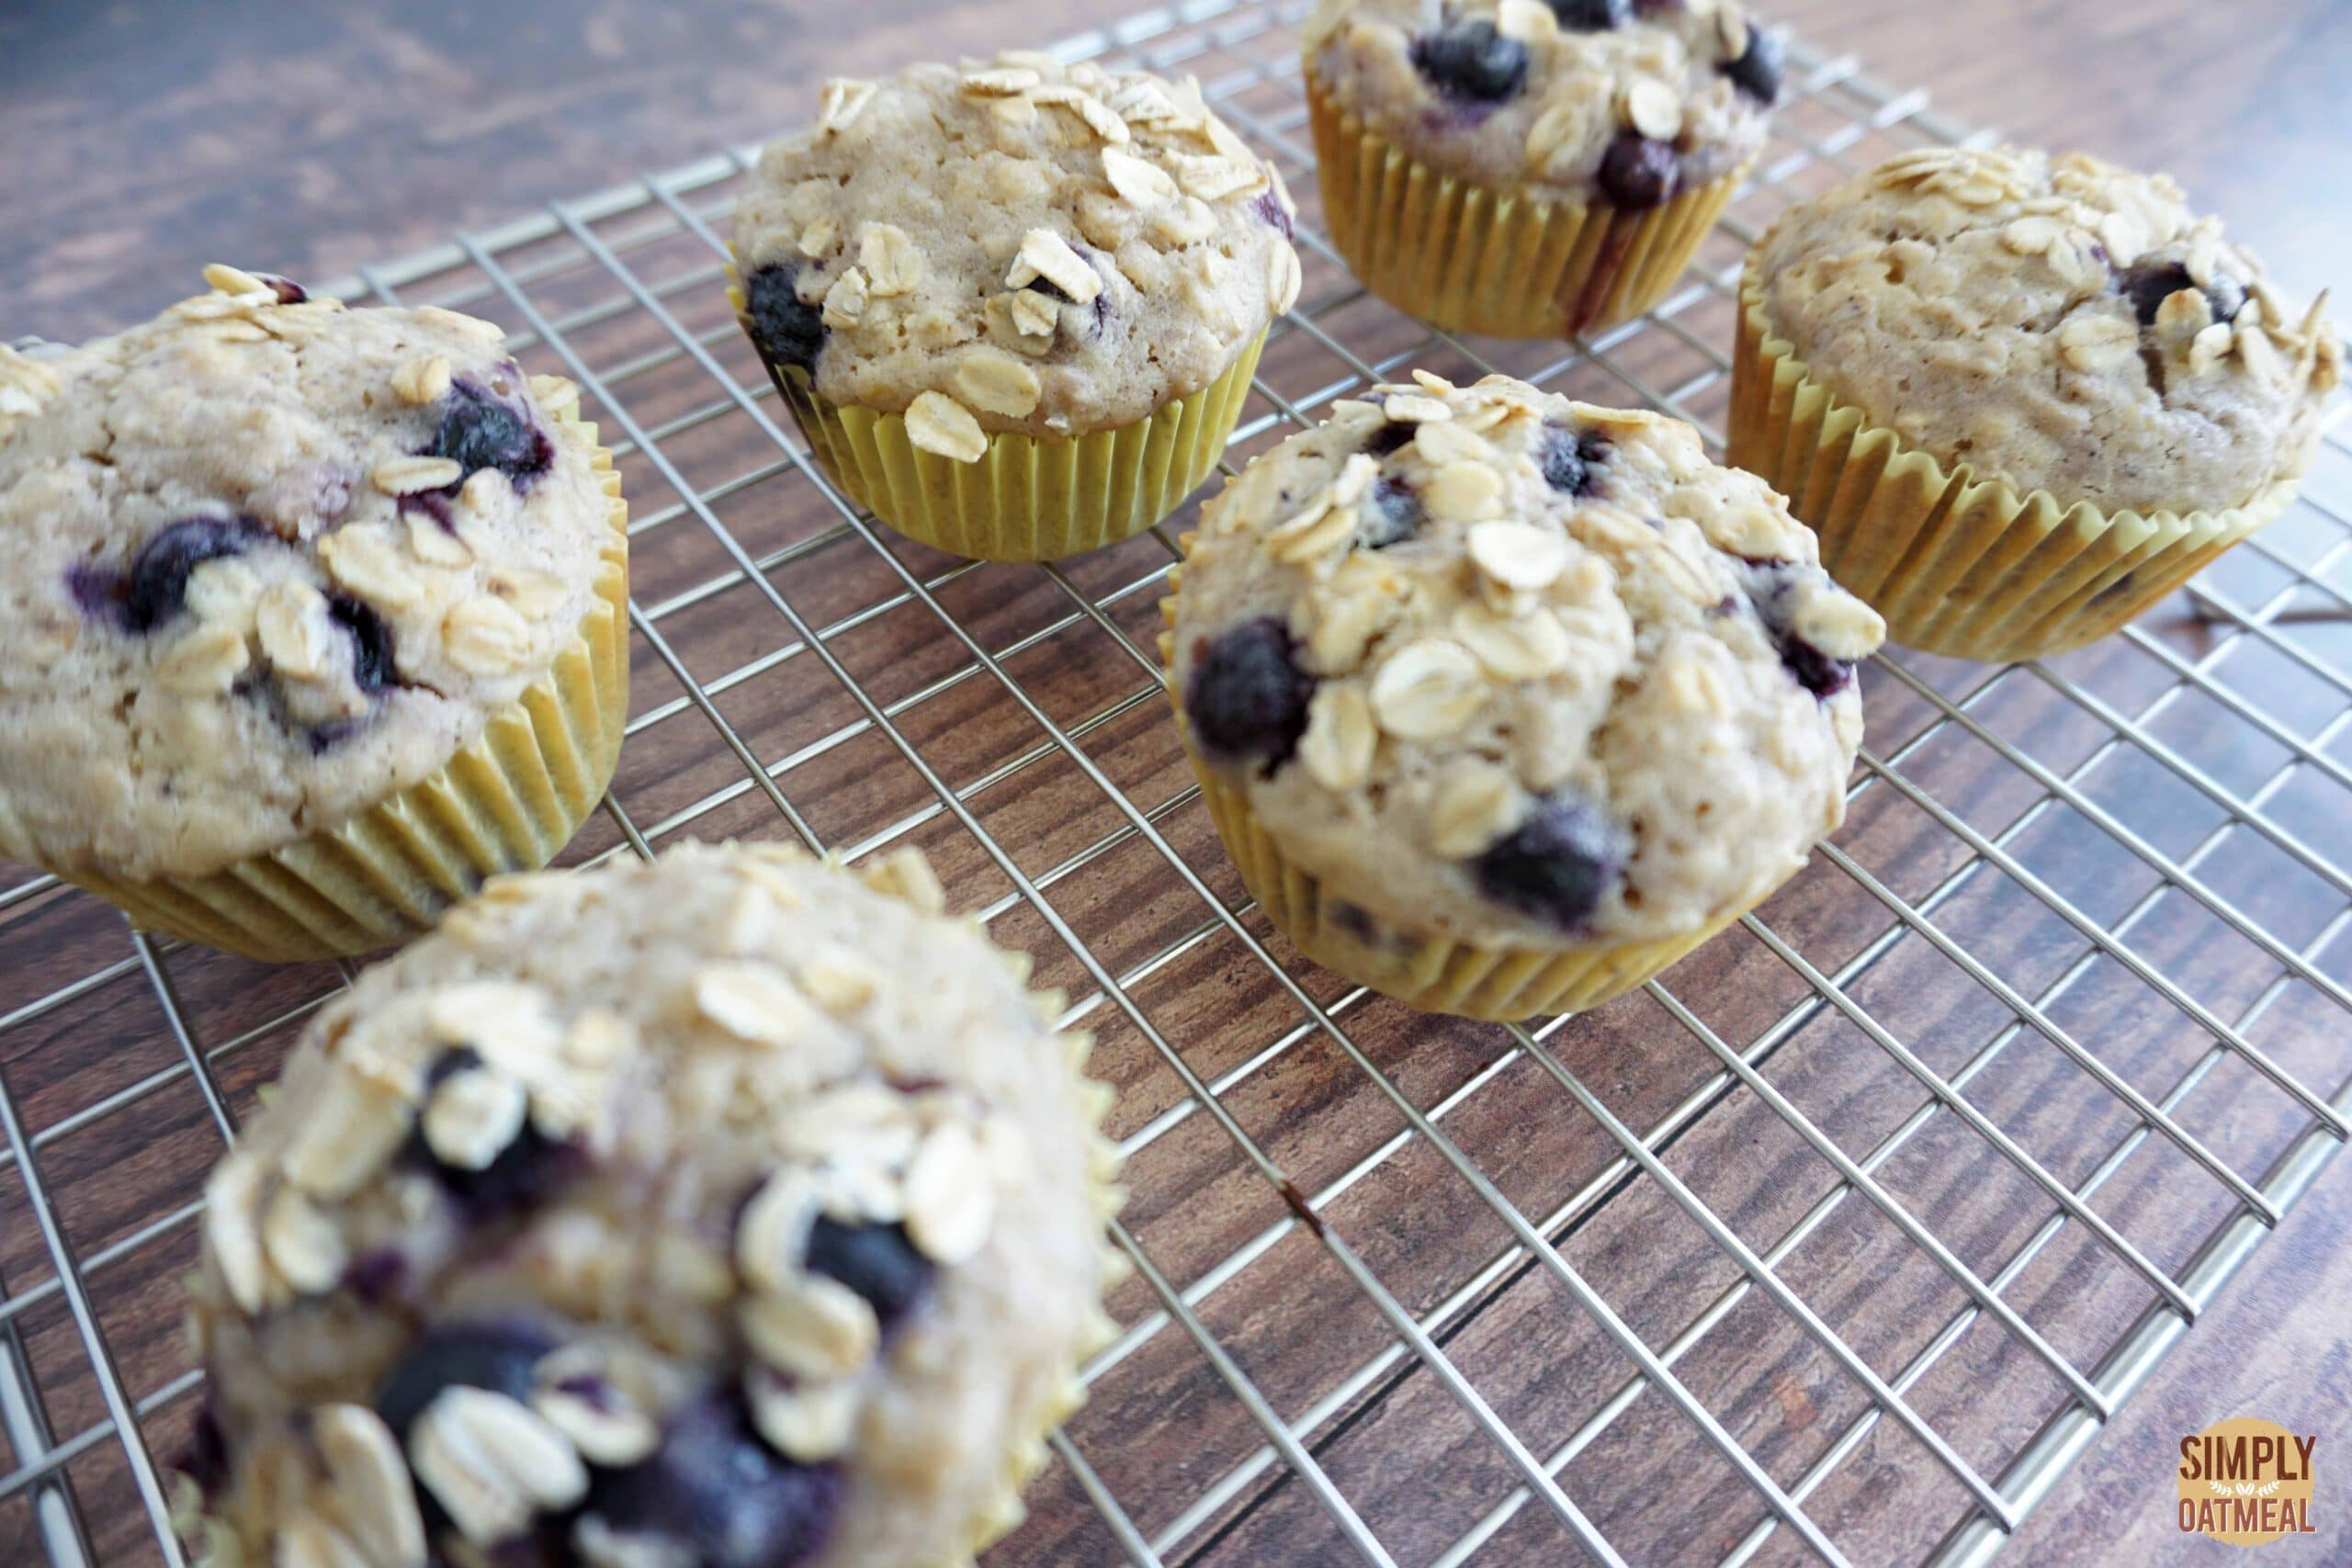 Blueberry lemon oatmeal muffins cooling on a wire rack